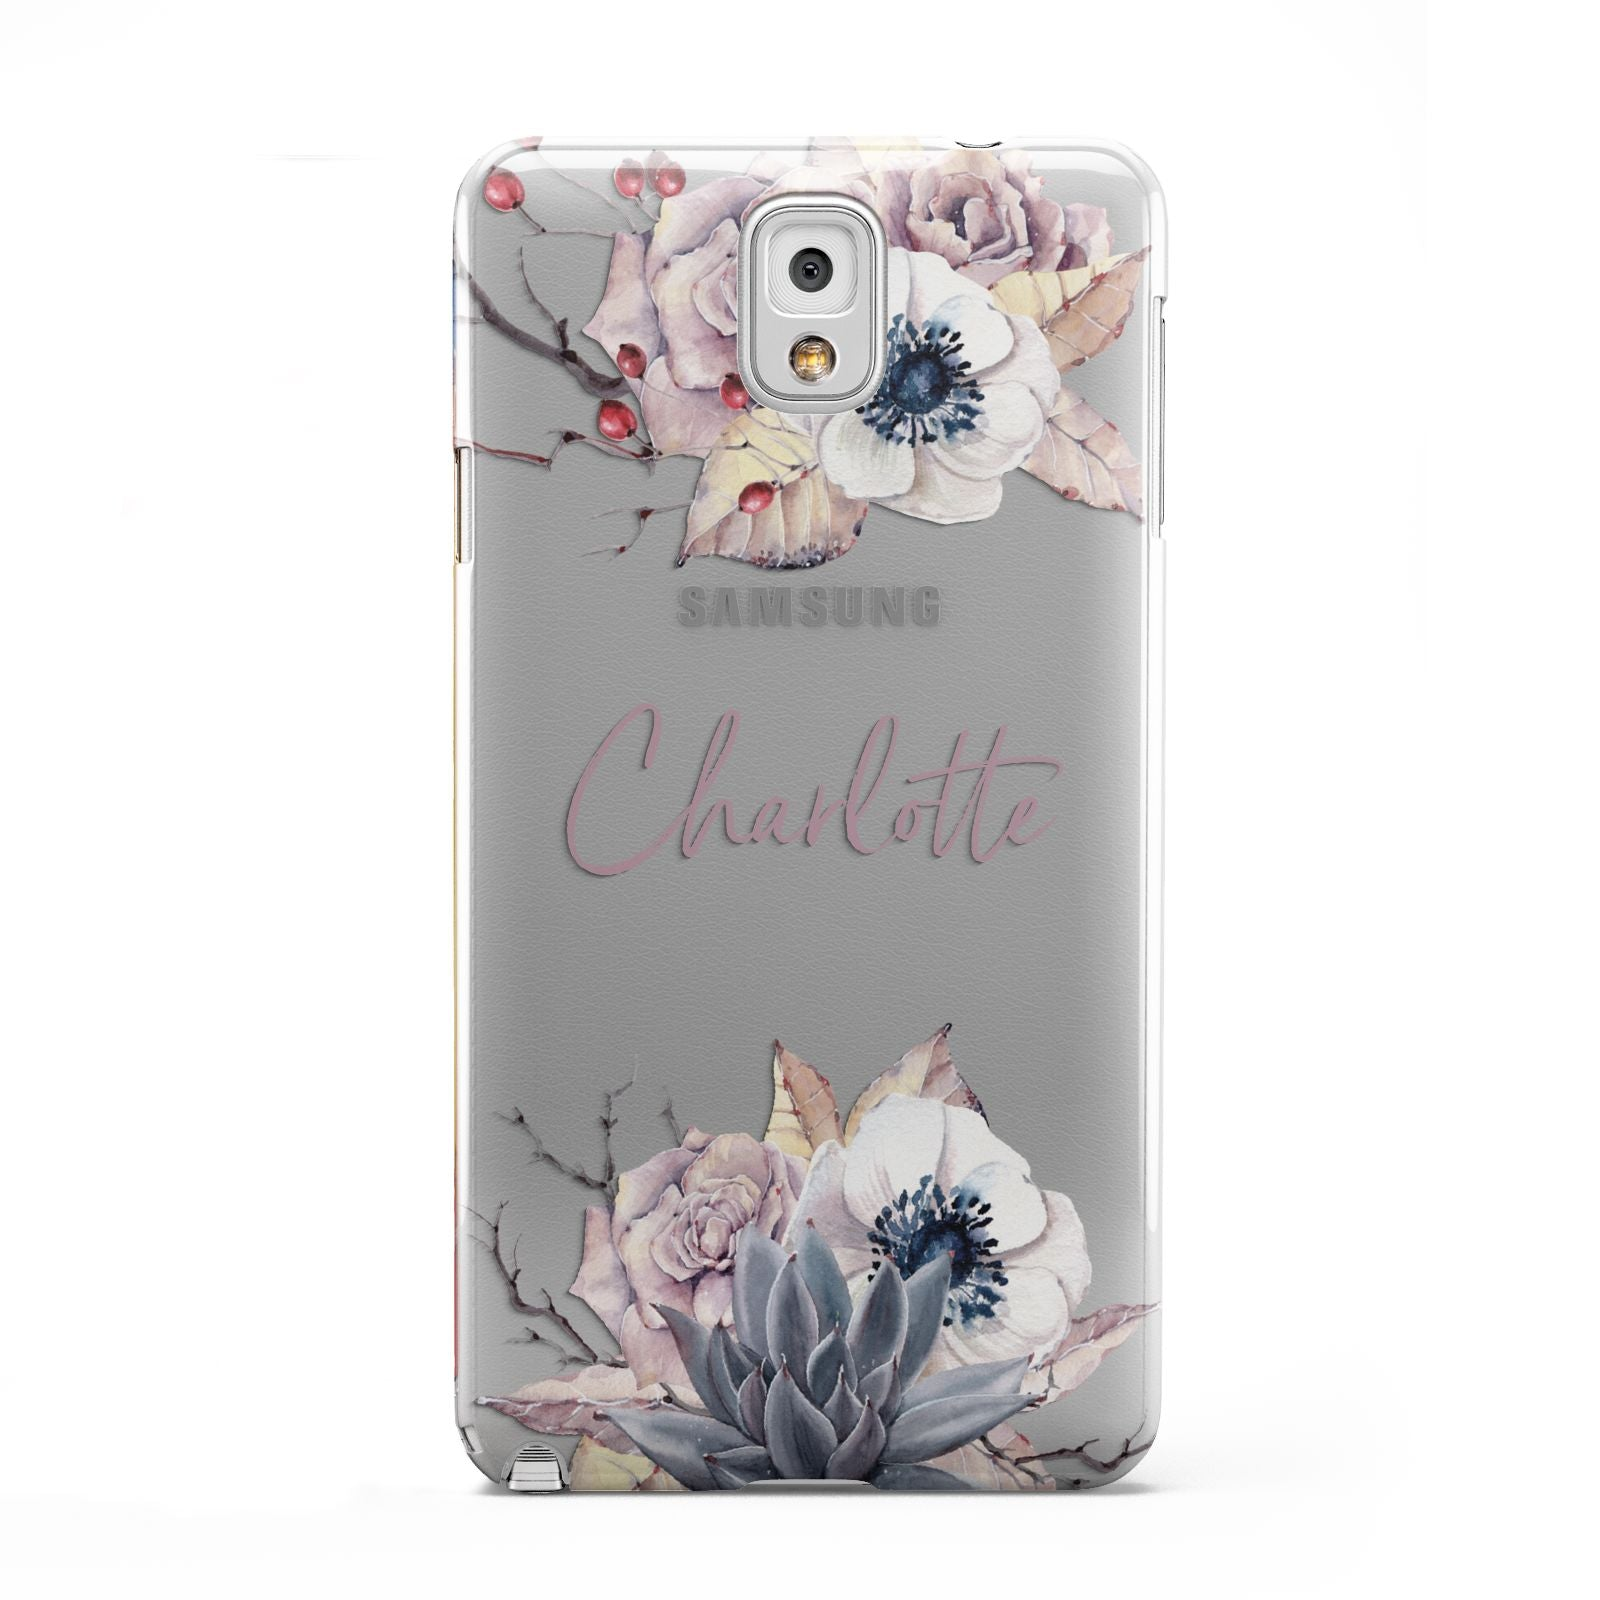 Personalised Autumn Floral Samsung Galaxy Note 3 Case